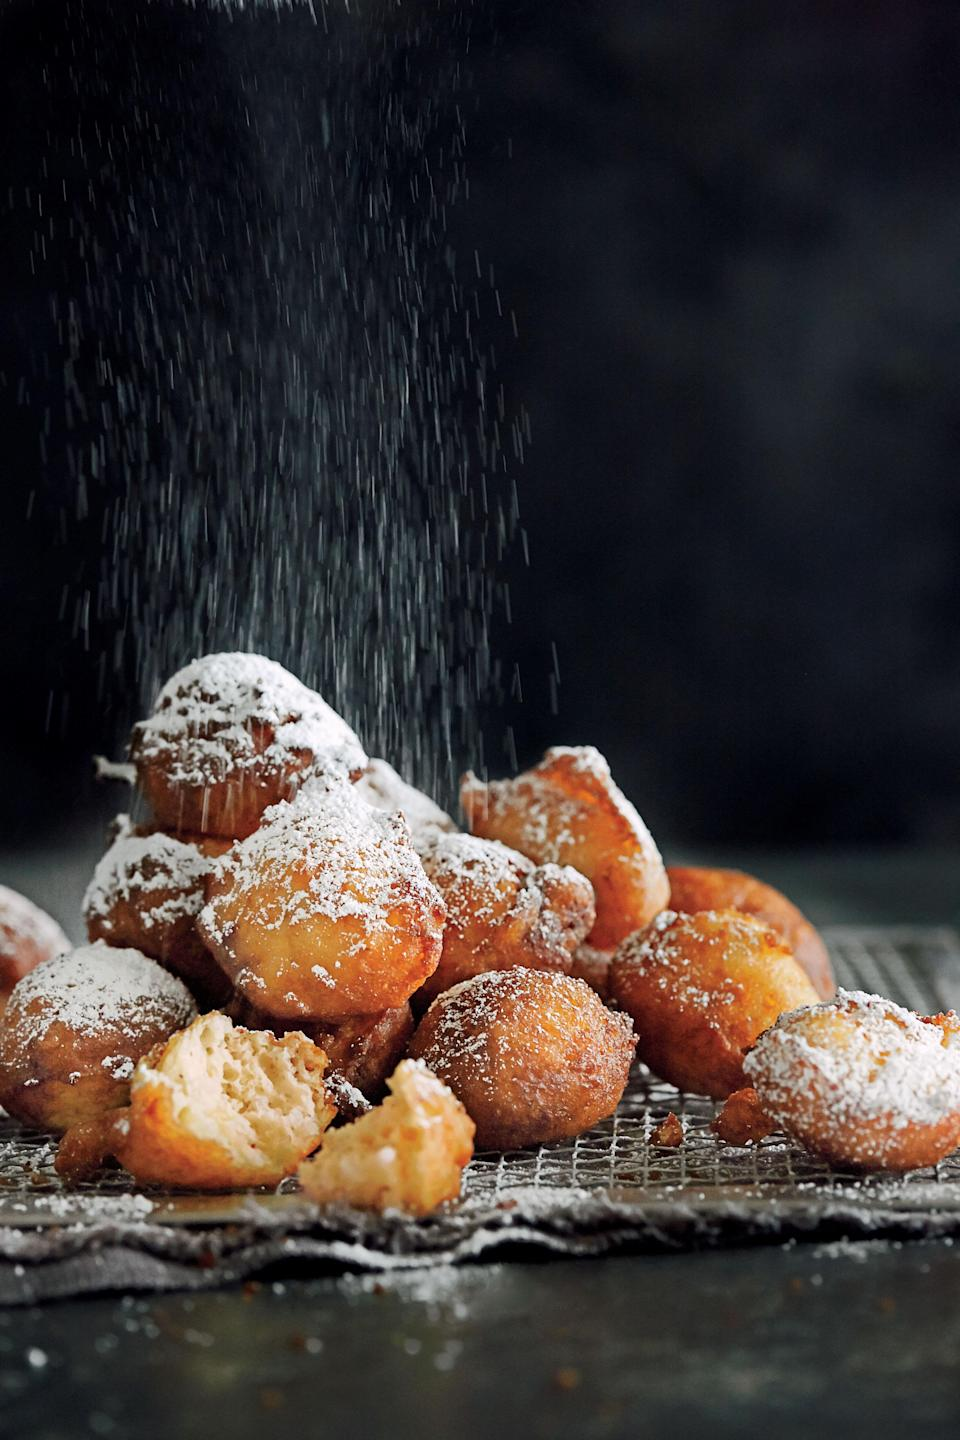 """<p><strong>Recipe:</strong> <a href=""""http://www.myrecipes.com/recipe/new-orleans-calas-50400000130706/"""" rel=""""nofollow noopener"""" target=""""_blank"""" data-ylk=""""slk:New Orleans Calas"""" class=""""link rapid-noclick-resp""""><strong>New Orleans Calas</strong></a></p> <p>The Calas Women, as they were called, peddled these hot breakfast fritters—whose name comes from the African word """"kárá""""—each morning in the French Quarter. The street vendors have vanished, so we honor them here with a classic rice-dough recipe too delicious to ever disappear.</p>"""